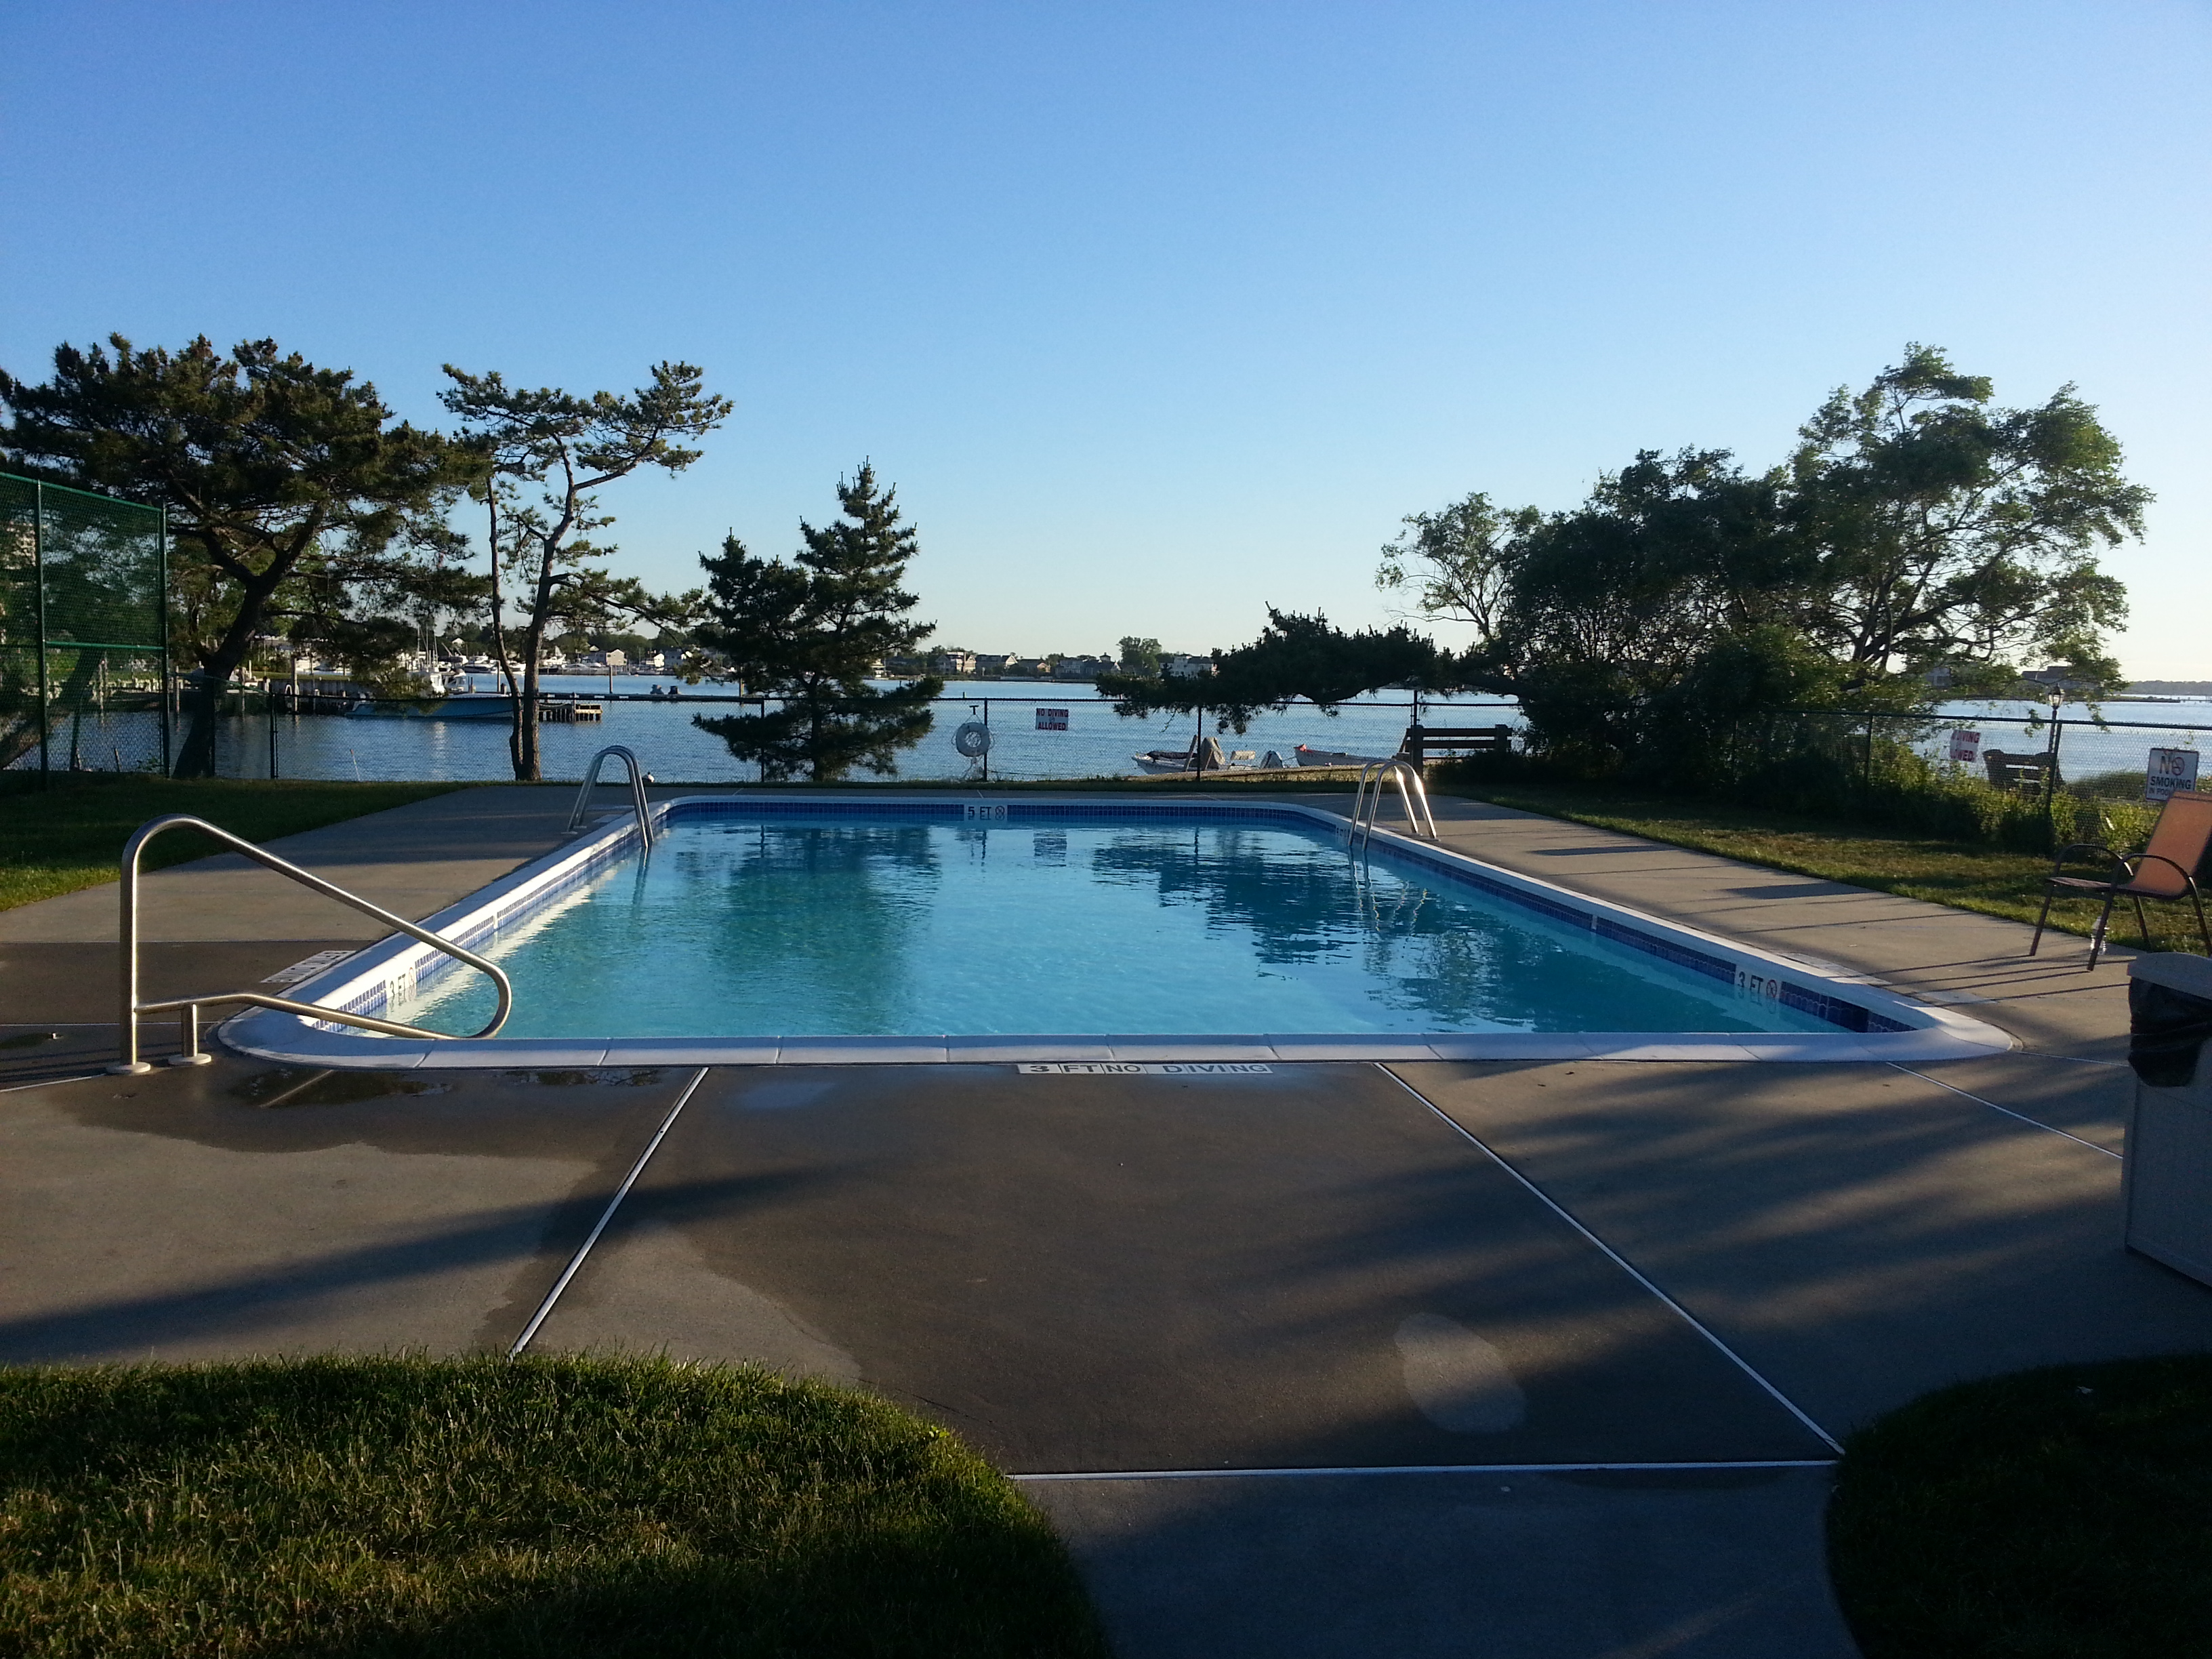 The Breakwater Cove community pool overlooks the river, making a perfect place for summer relaxation